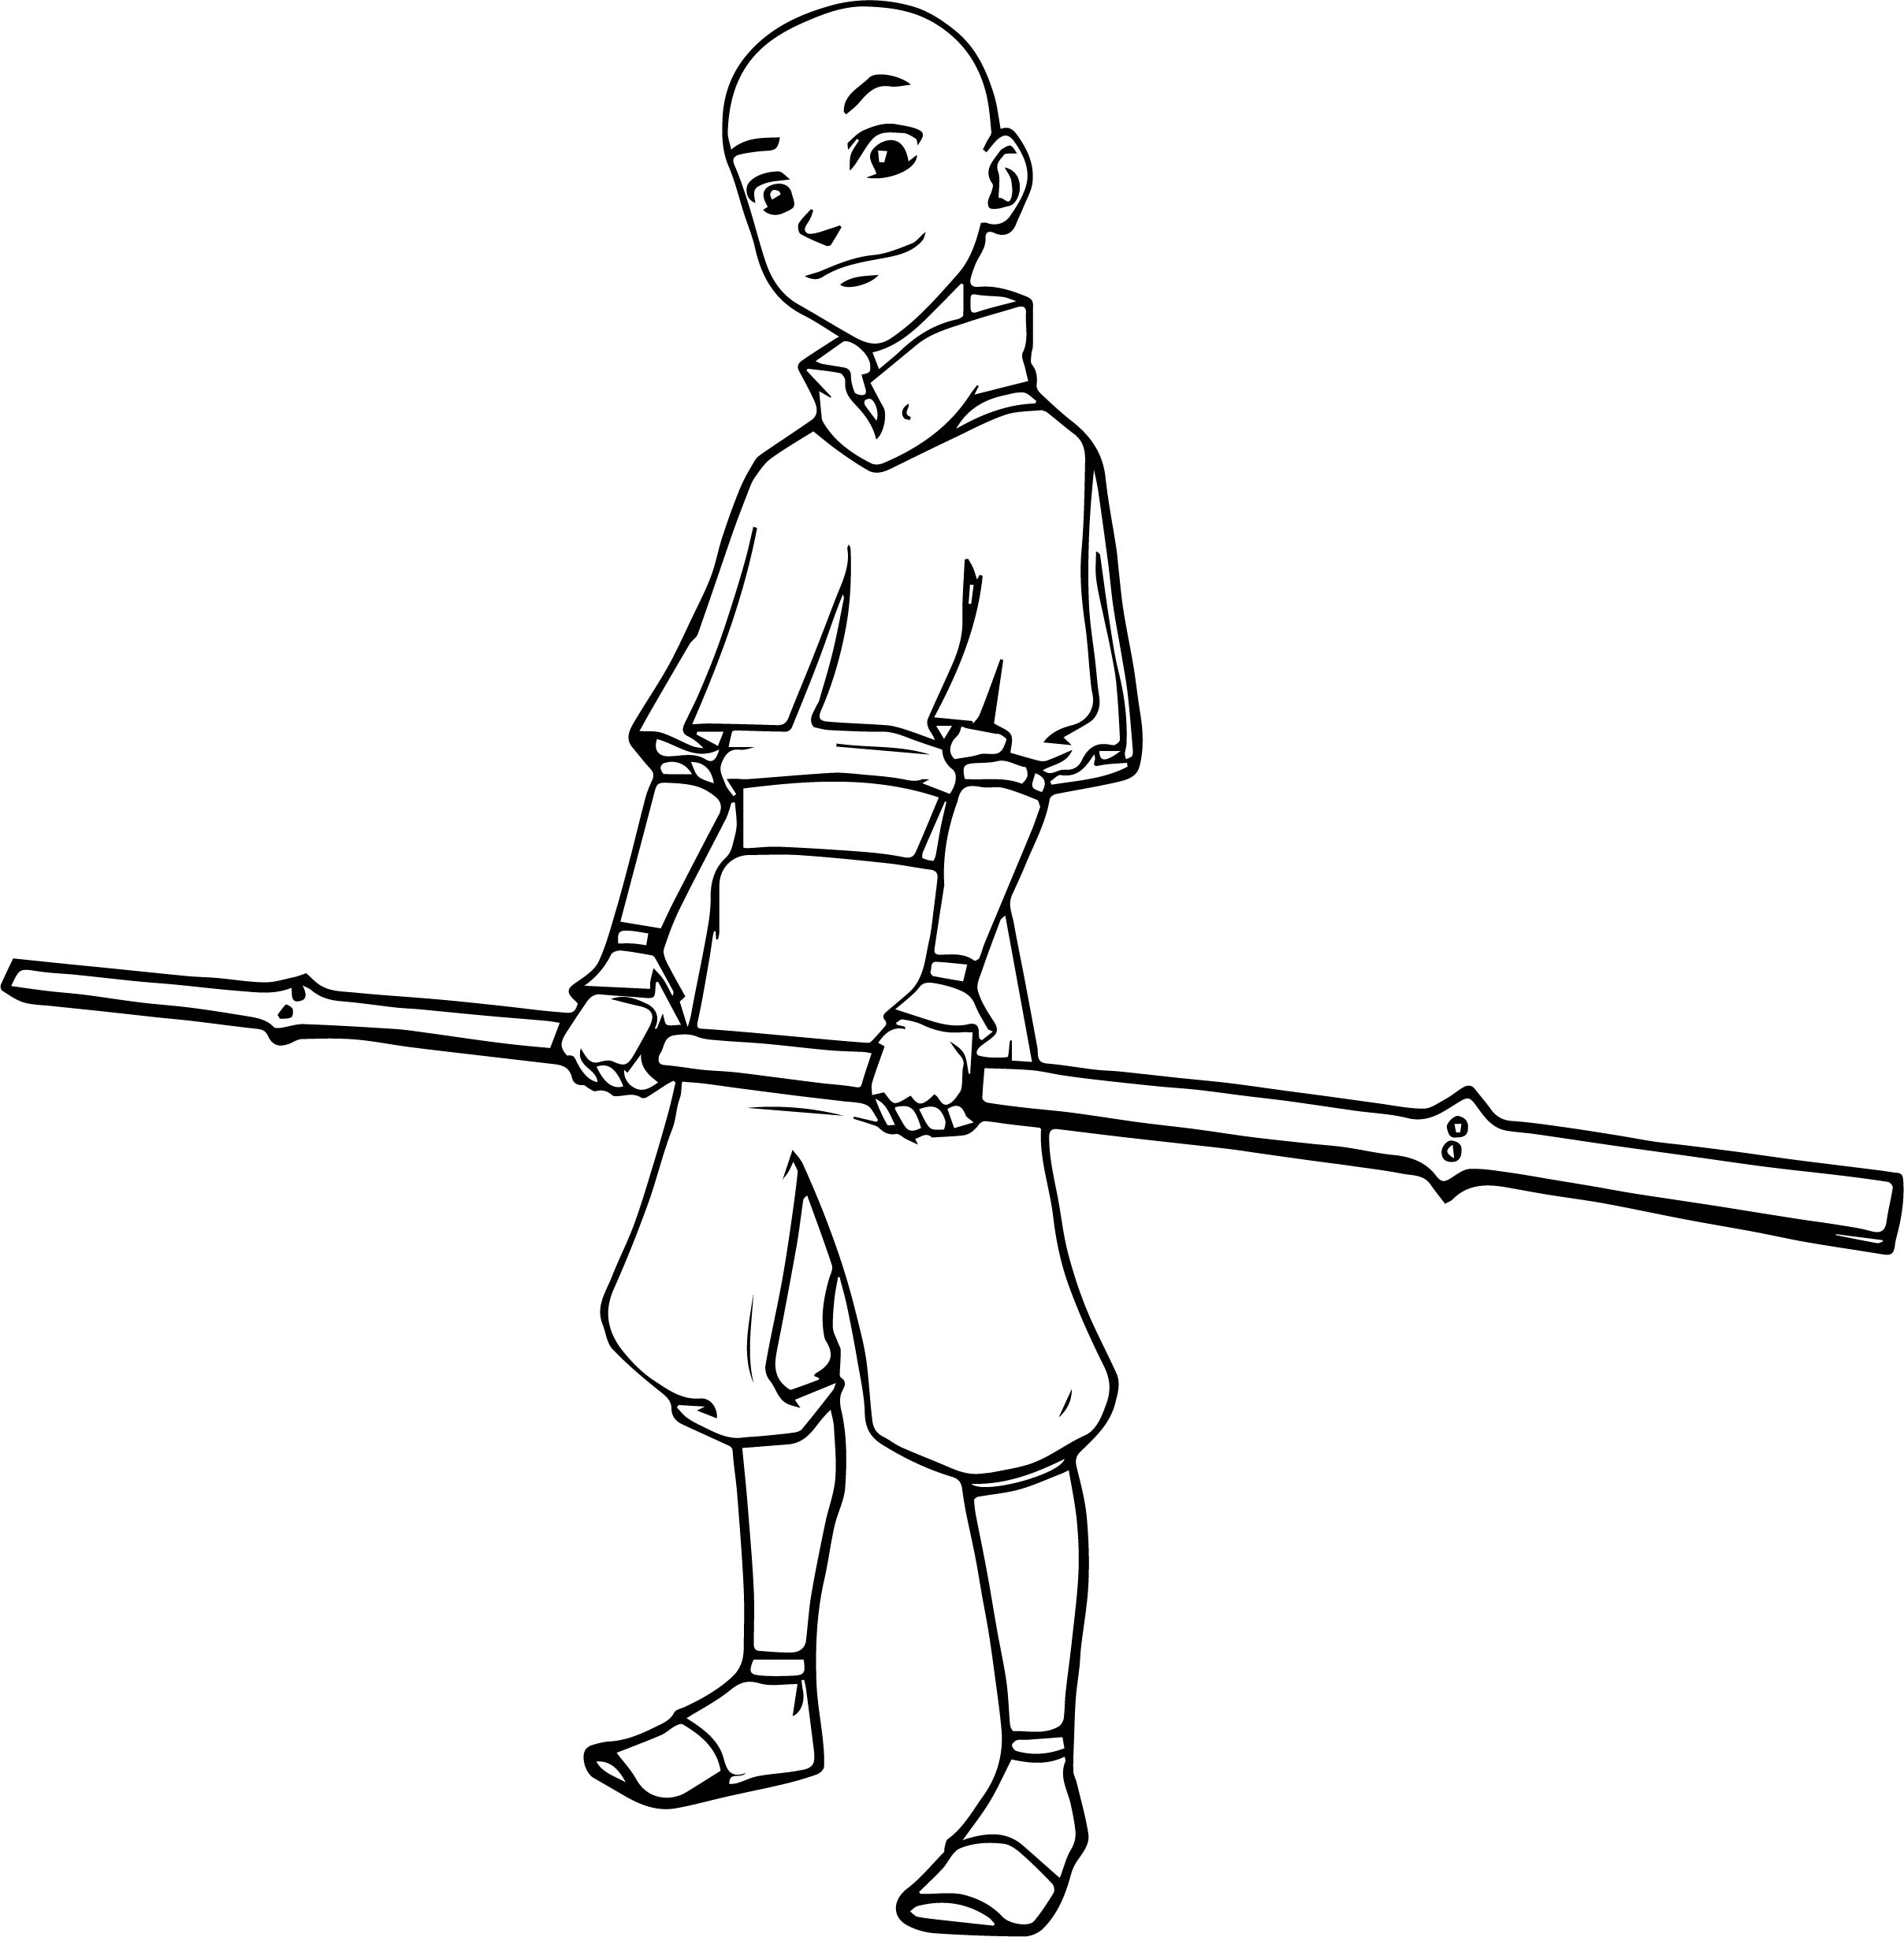 Aang Avatar Stick Coloring Page